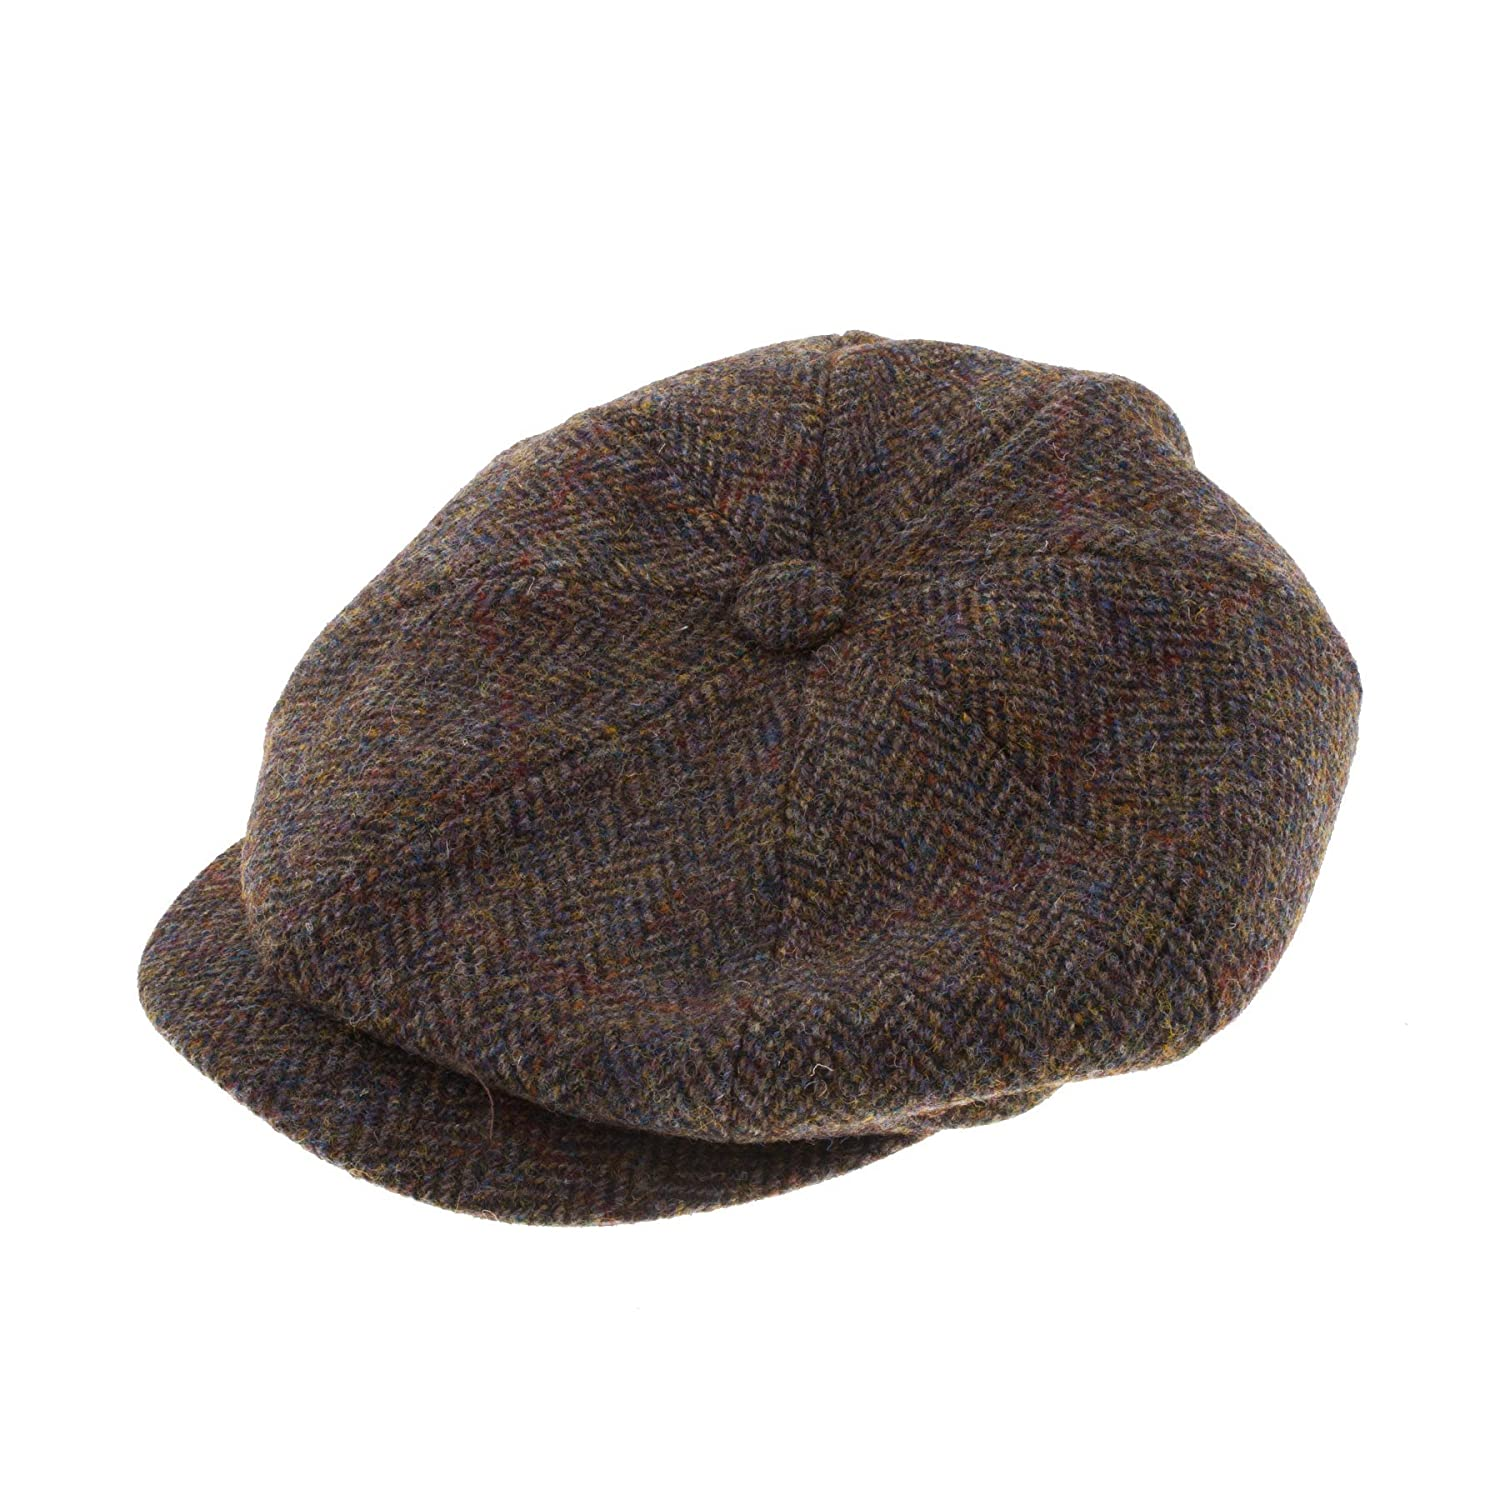 Failsworth Men s Harris Tweed Carloway Cap   Hat 2013 Brown Check (59CM)   Amazon.co.uk  Clothing 8ef8b80381b